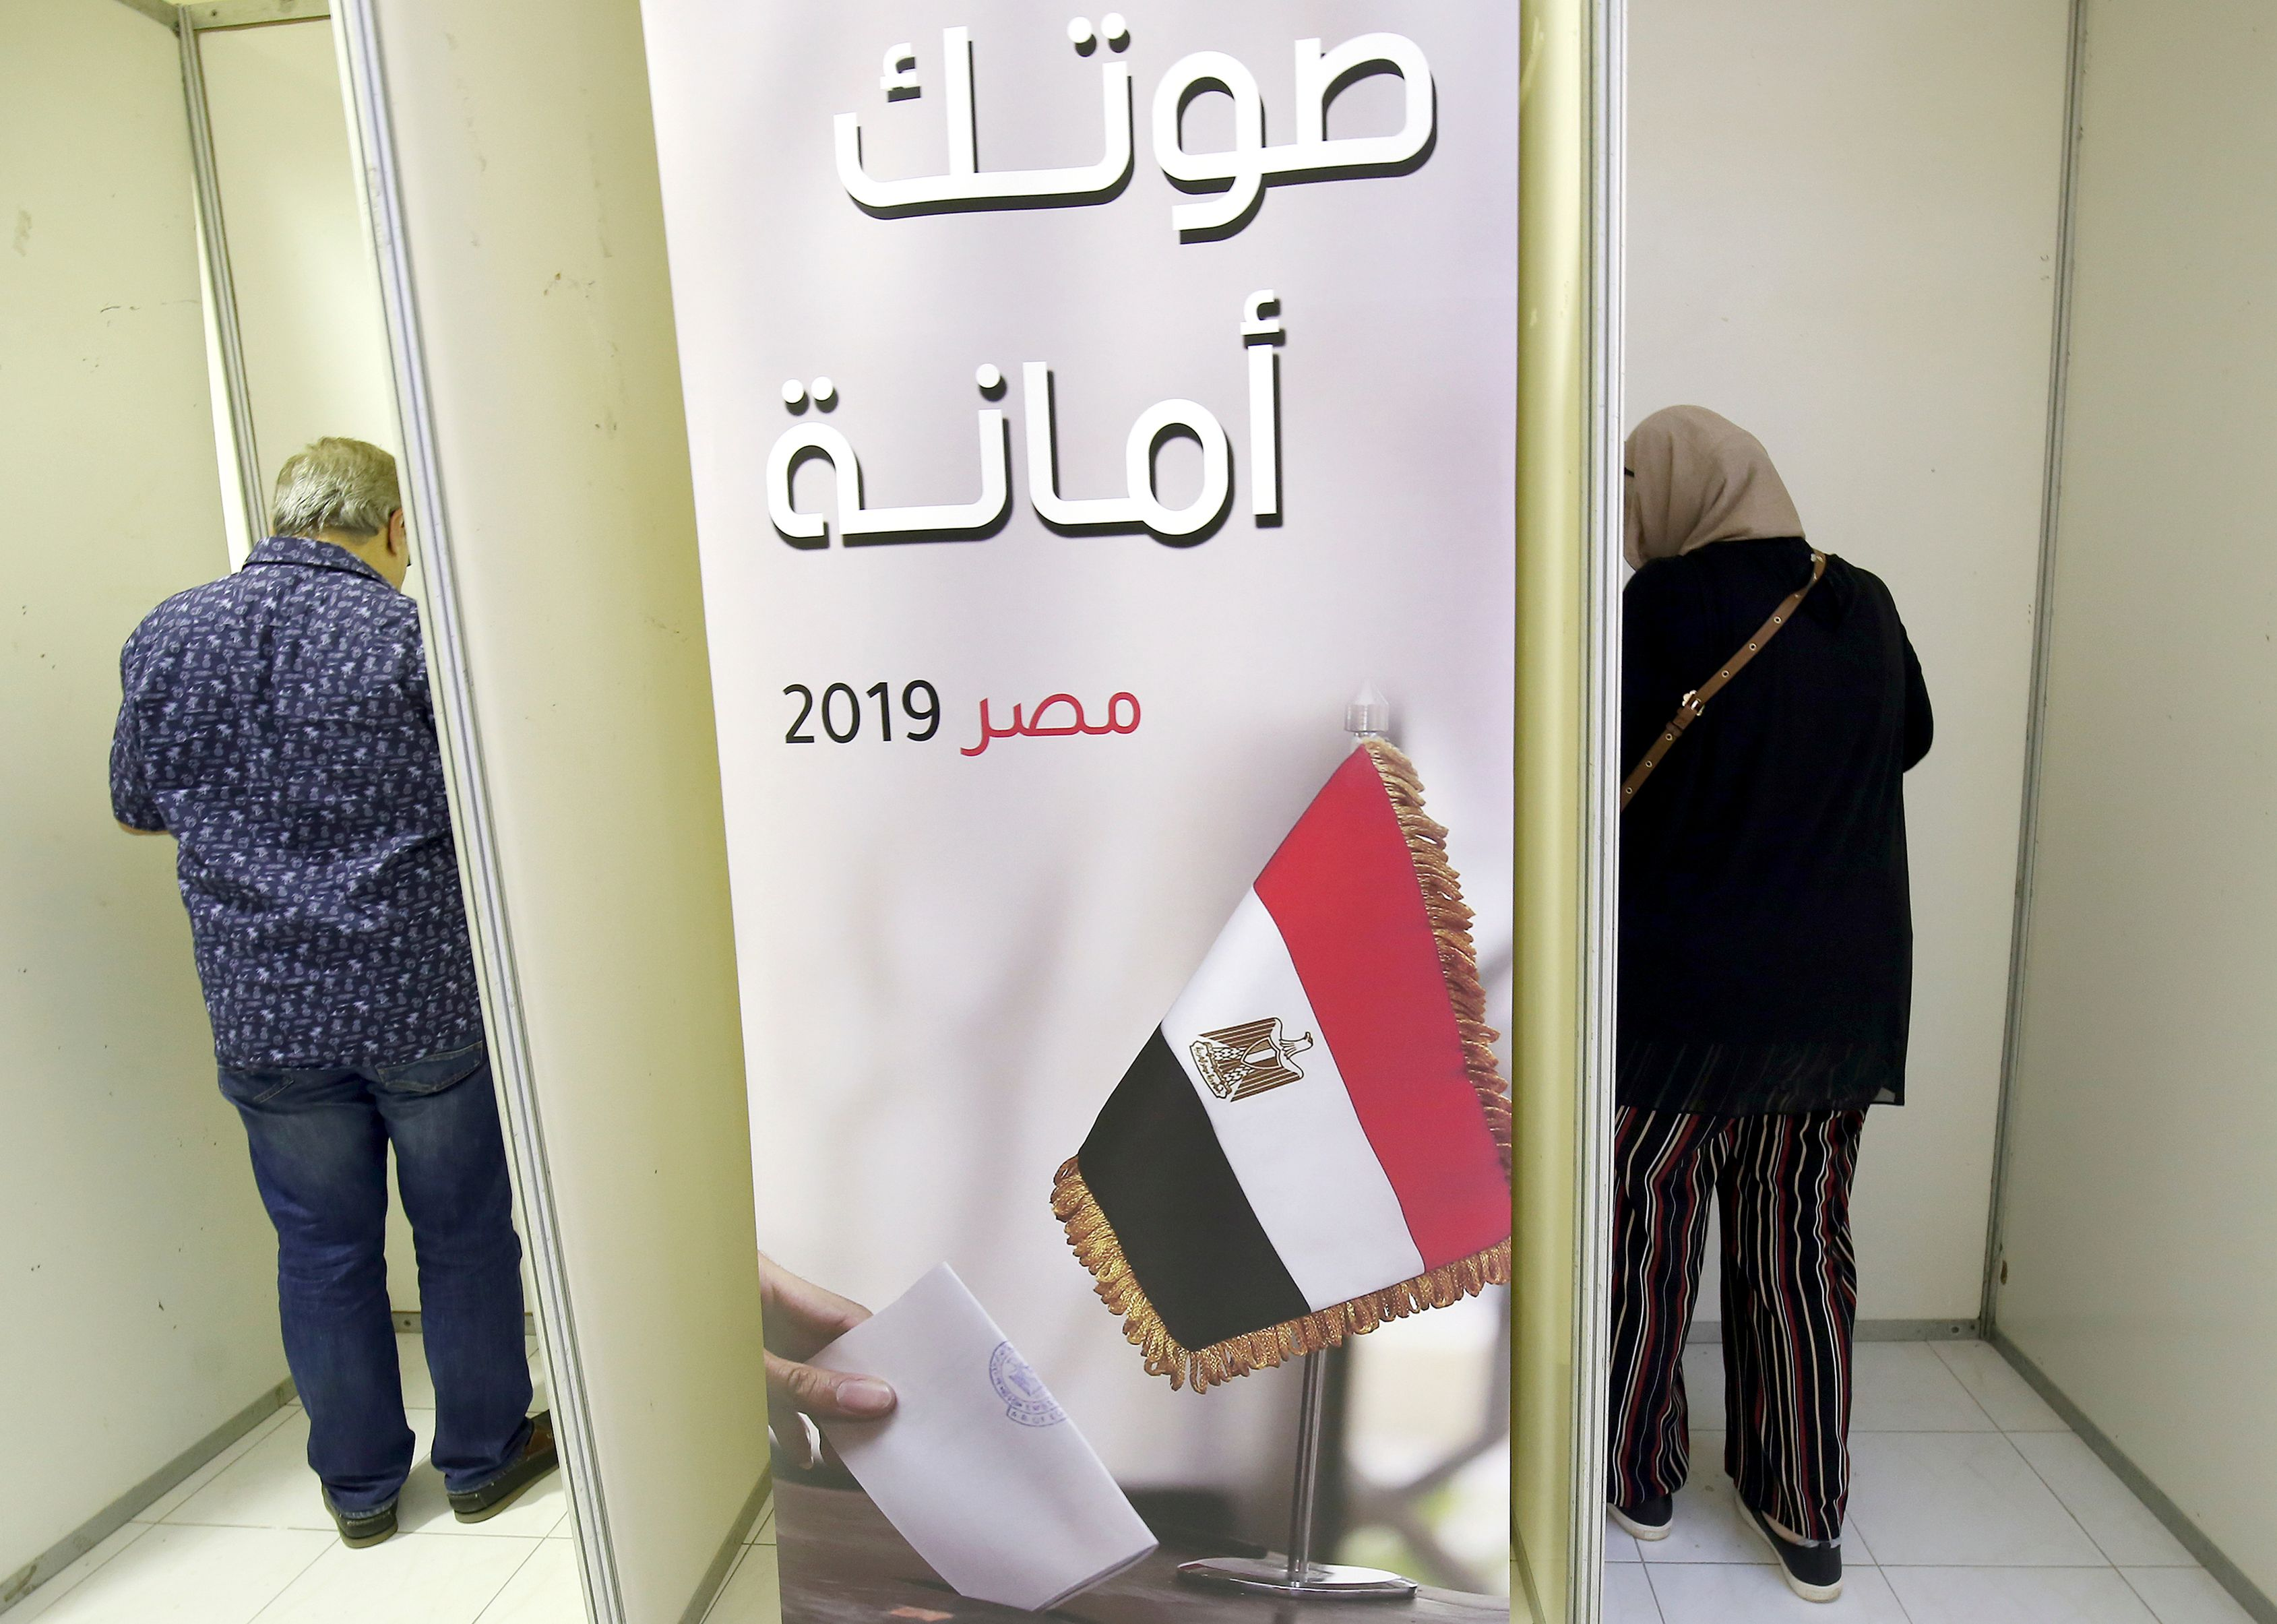 Egyptian nationals, living in Kuwait, cast their votes in a referendum on constitutional amendments, at the Egyptian embassy in Kuwait City on April 19, 2019. - The amendments -- widely expected to pass in the face of minimal opposition -- would prolong Sisi's current term to 2024 from 2022 and allow him to then run for another six-year term. They also include giving the military greater influence in political life, granting Sisi wide control over the judiciary and broadening the jurisdiction of military courts over civilians. (Photo by Yasser Al-Zayyat / AFP)